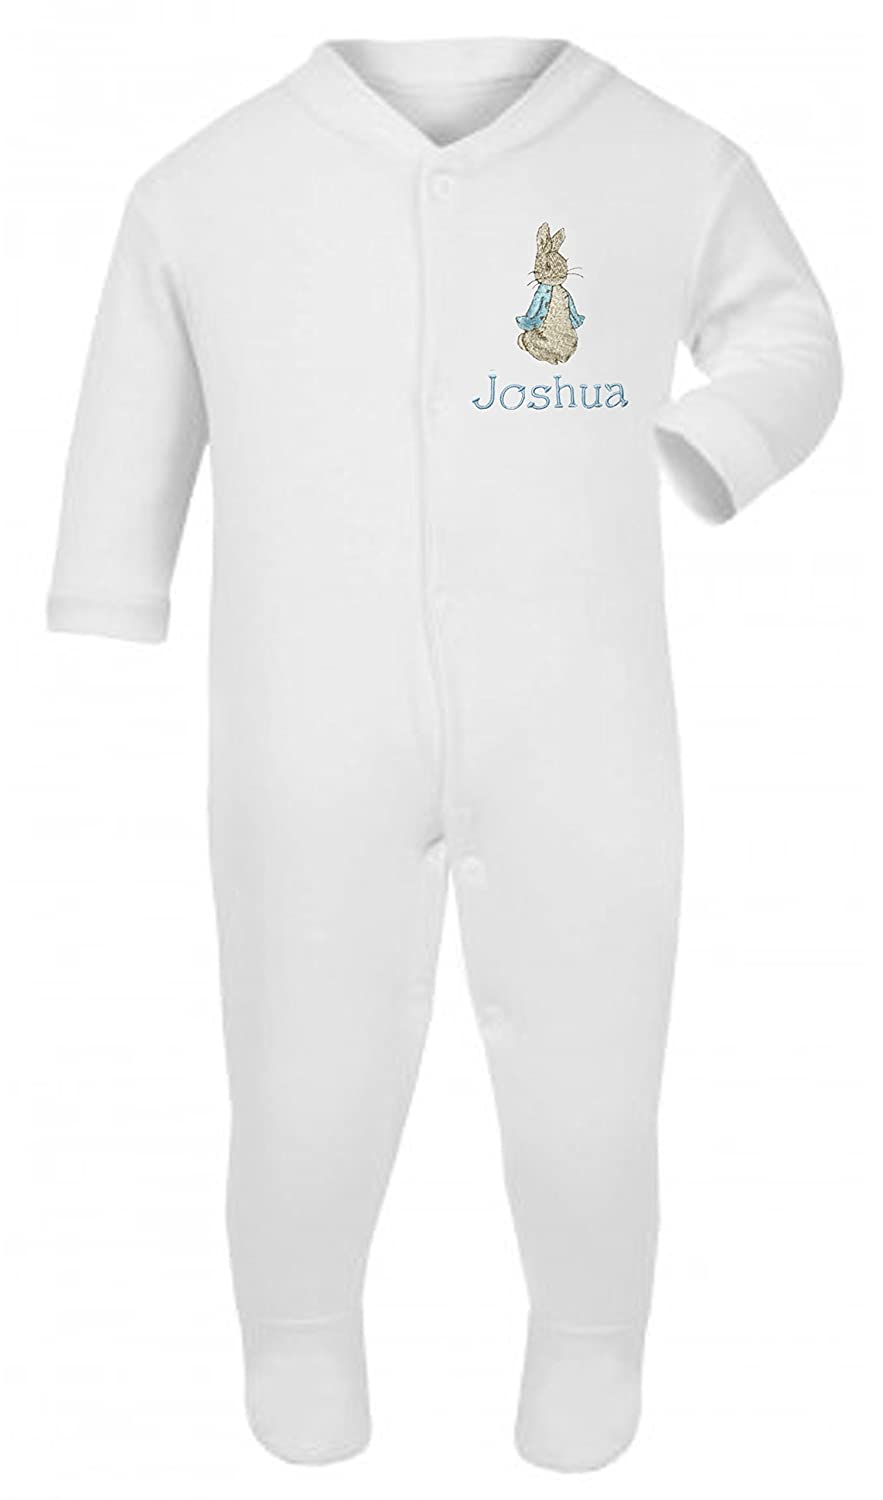 Girls Personalised Peter The Rabbit Tiny Baby//New Born Baby Grow//Sleepsuit Now Available in to Sizes.